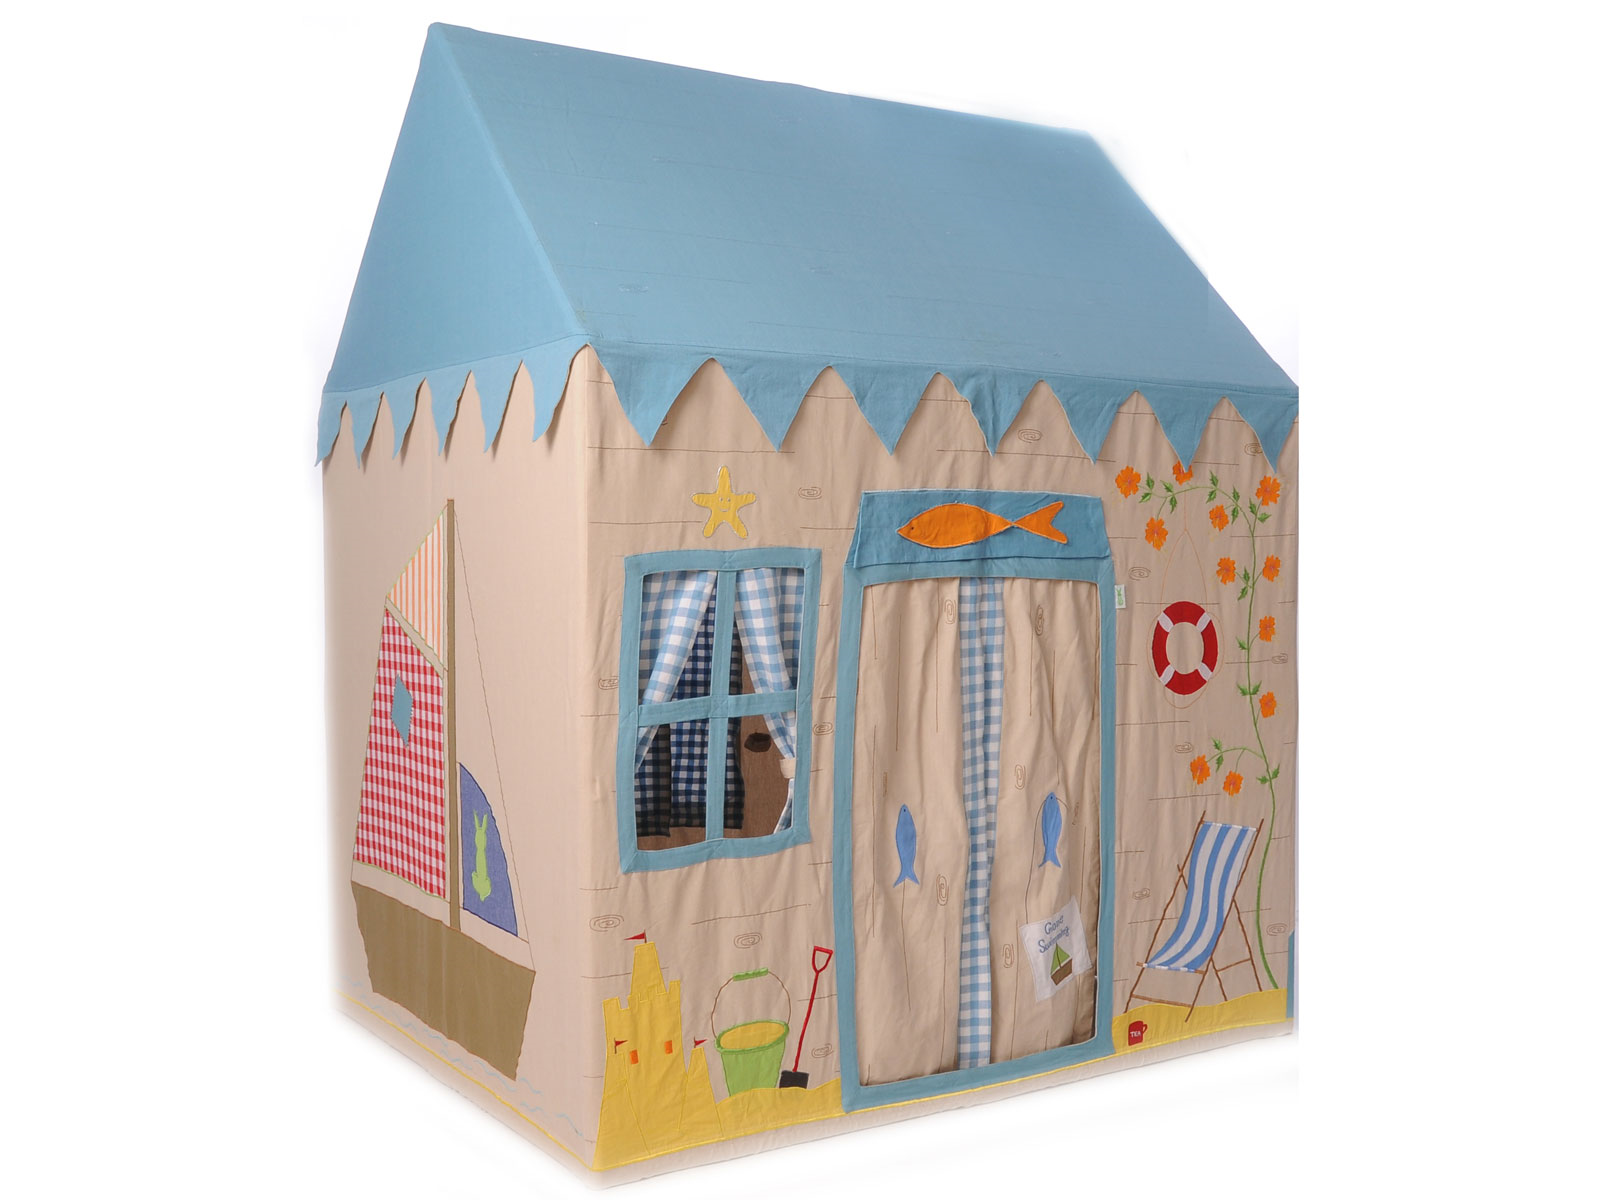 Win Green Handmade Cotton Beach House Playhouse - Playhouse of Dreams  - 1